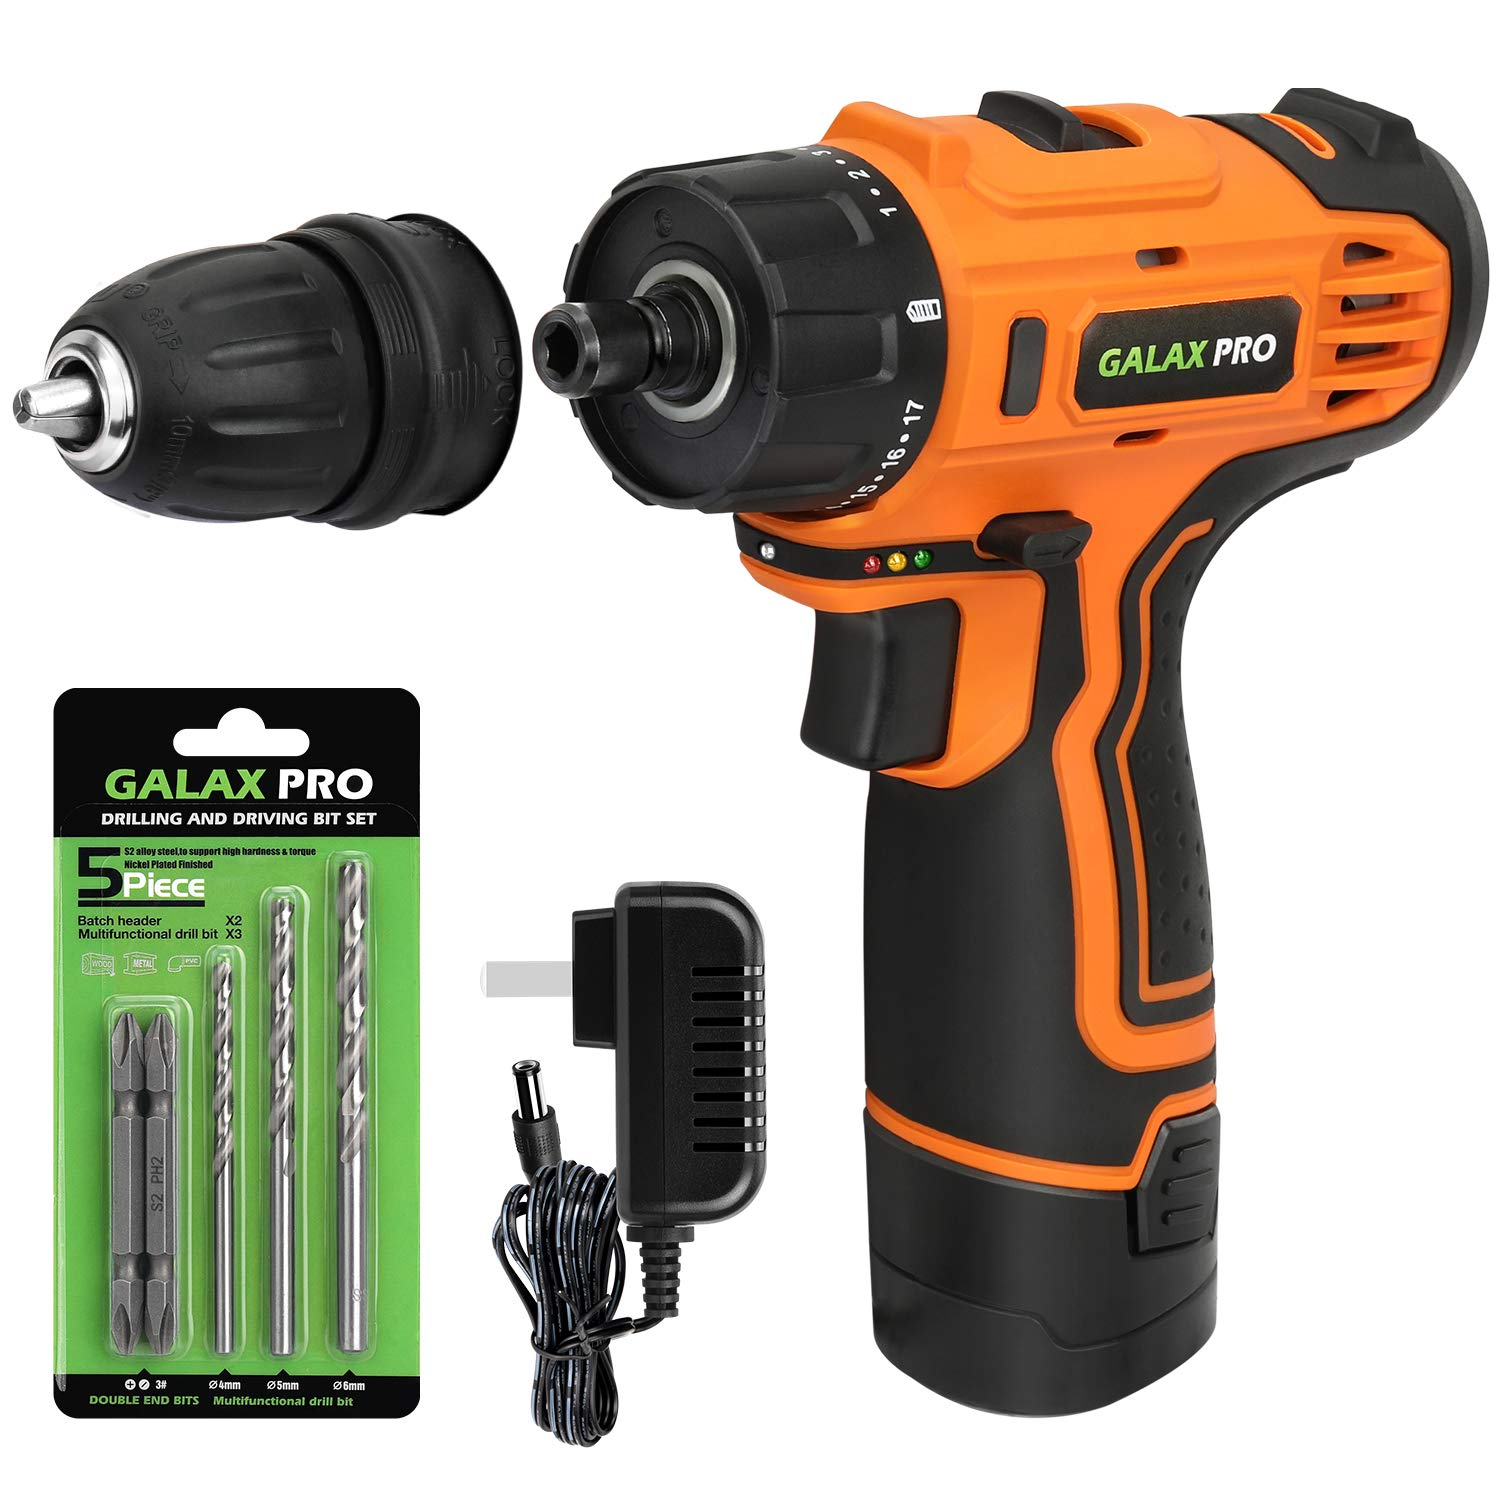 Galax Pro Dc 12v 3 8 Cordless Impact Drill Driver Tool Kit With Battery And Charger Led Work Light 17 1 Torque Setting Max Torque 25n M